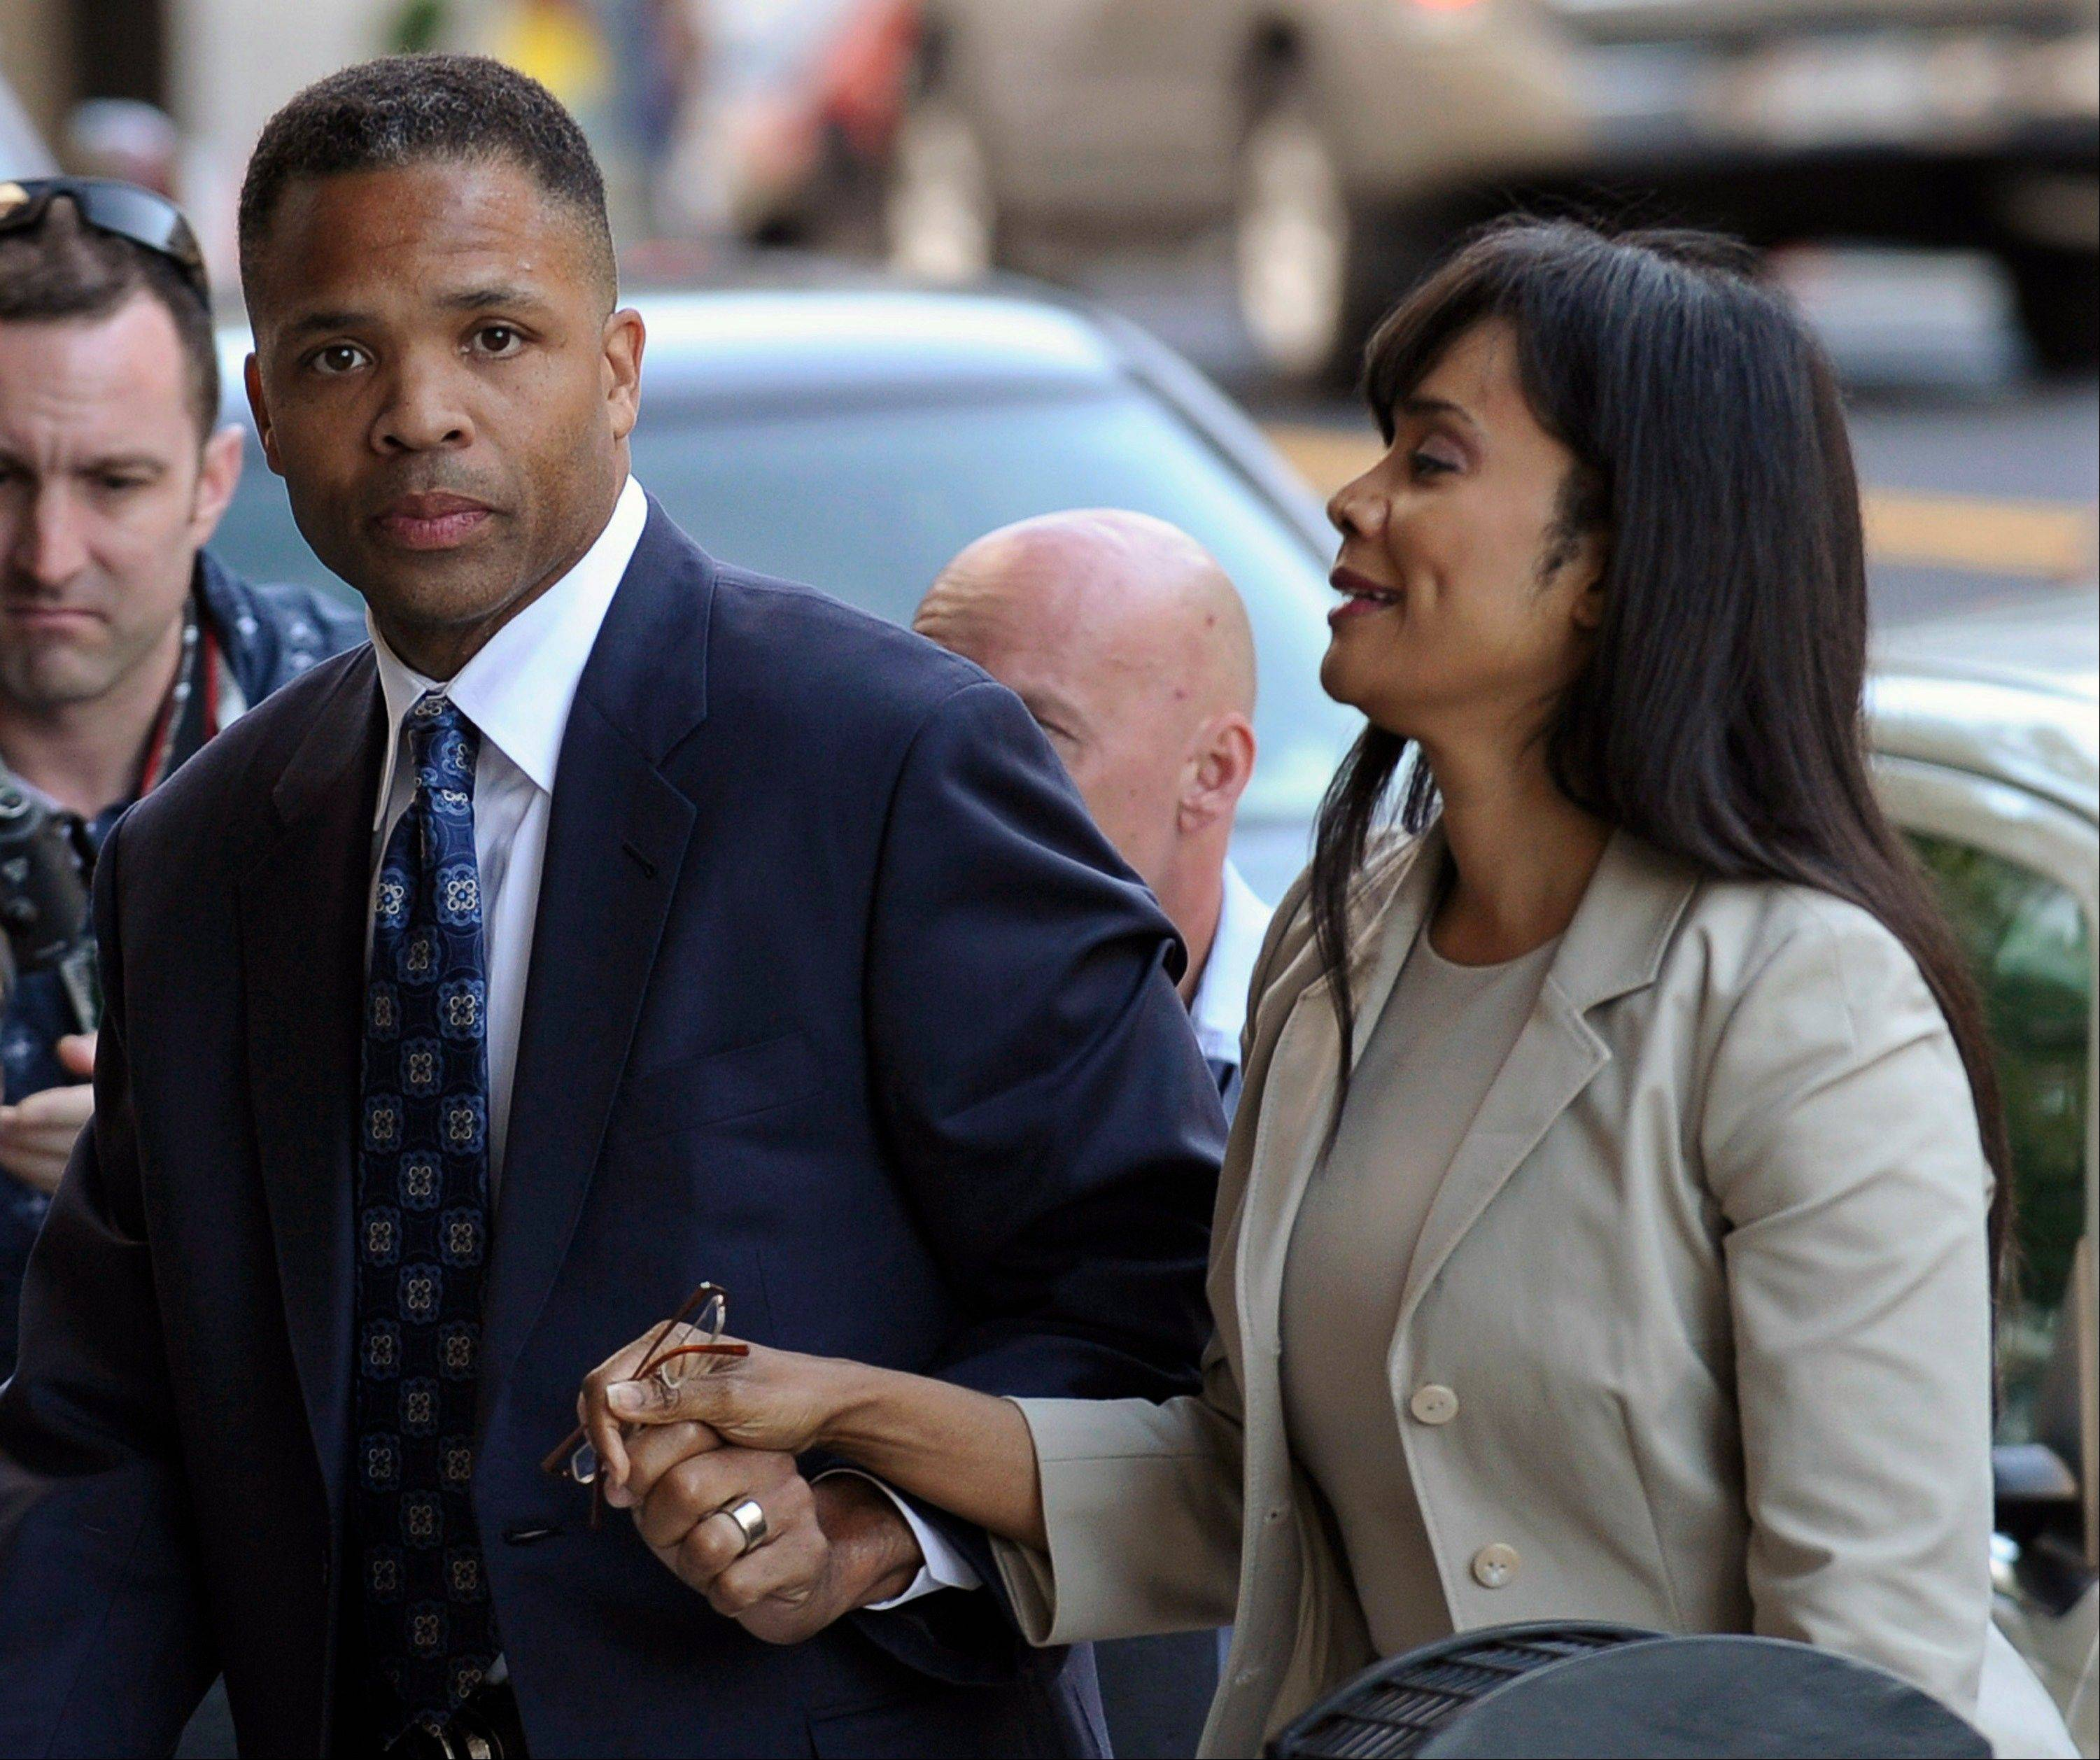 In this Aug. 14, 2013 file photo, former Illinois Rep. Jesse Jackson Jr. and his wife, Sandra, arrive at federal court in Washington to learn their fates when a federal judge sentences the one-time power couple for misusing $750,000 in campaign money on everything from a gold-plated Rolex watch and mink capes to vacations and mounted elk heads. The story was voted as one of the top 10 stories in Illinois for 2013.